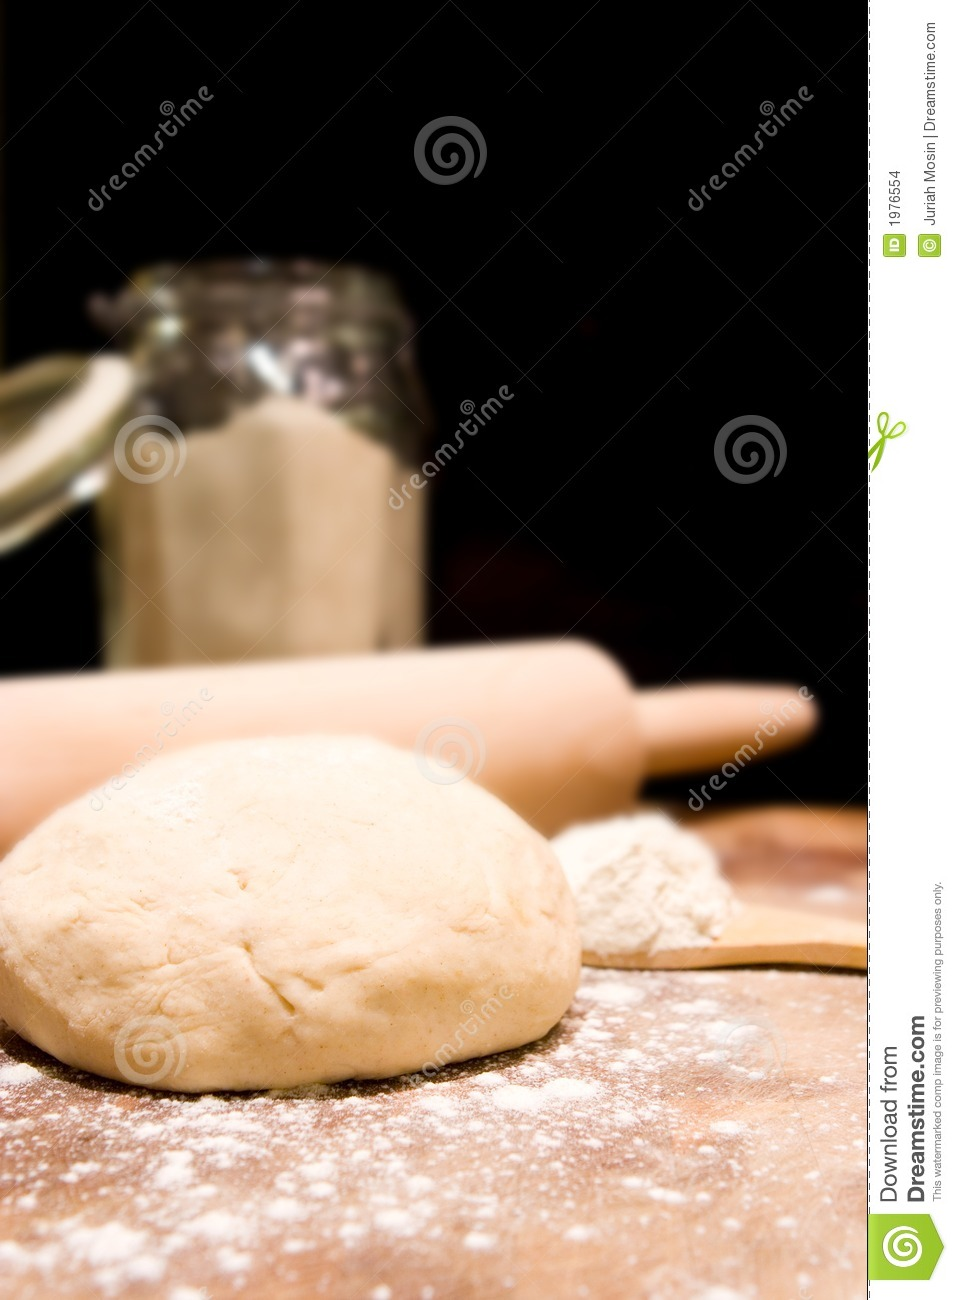 Ball of kneaded dough, rolling pin with scattered flour